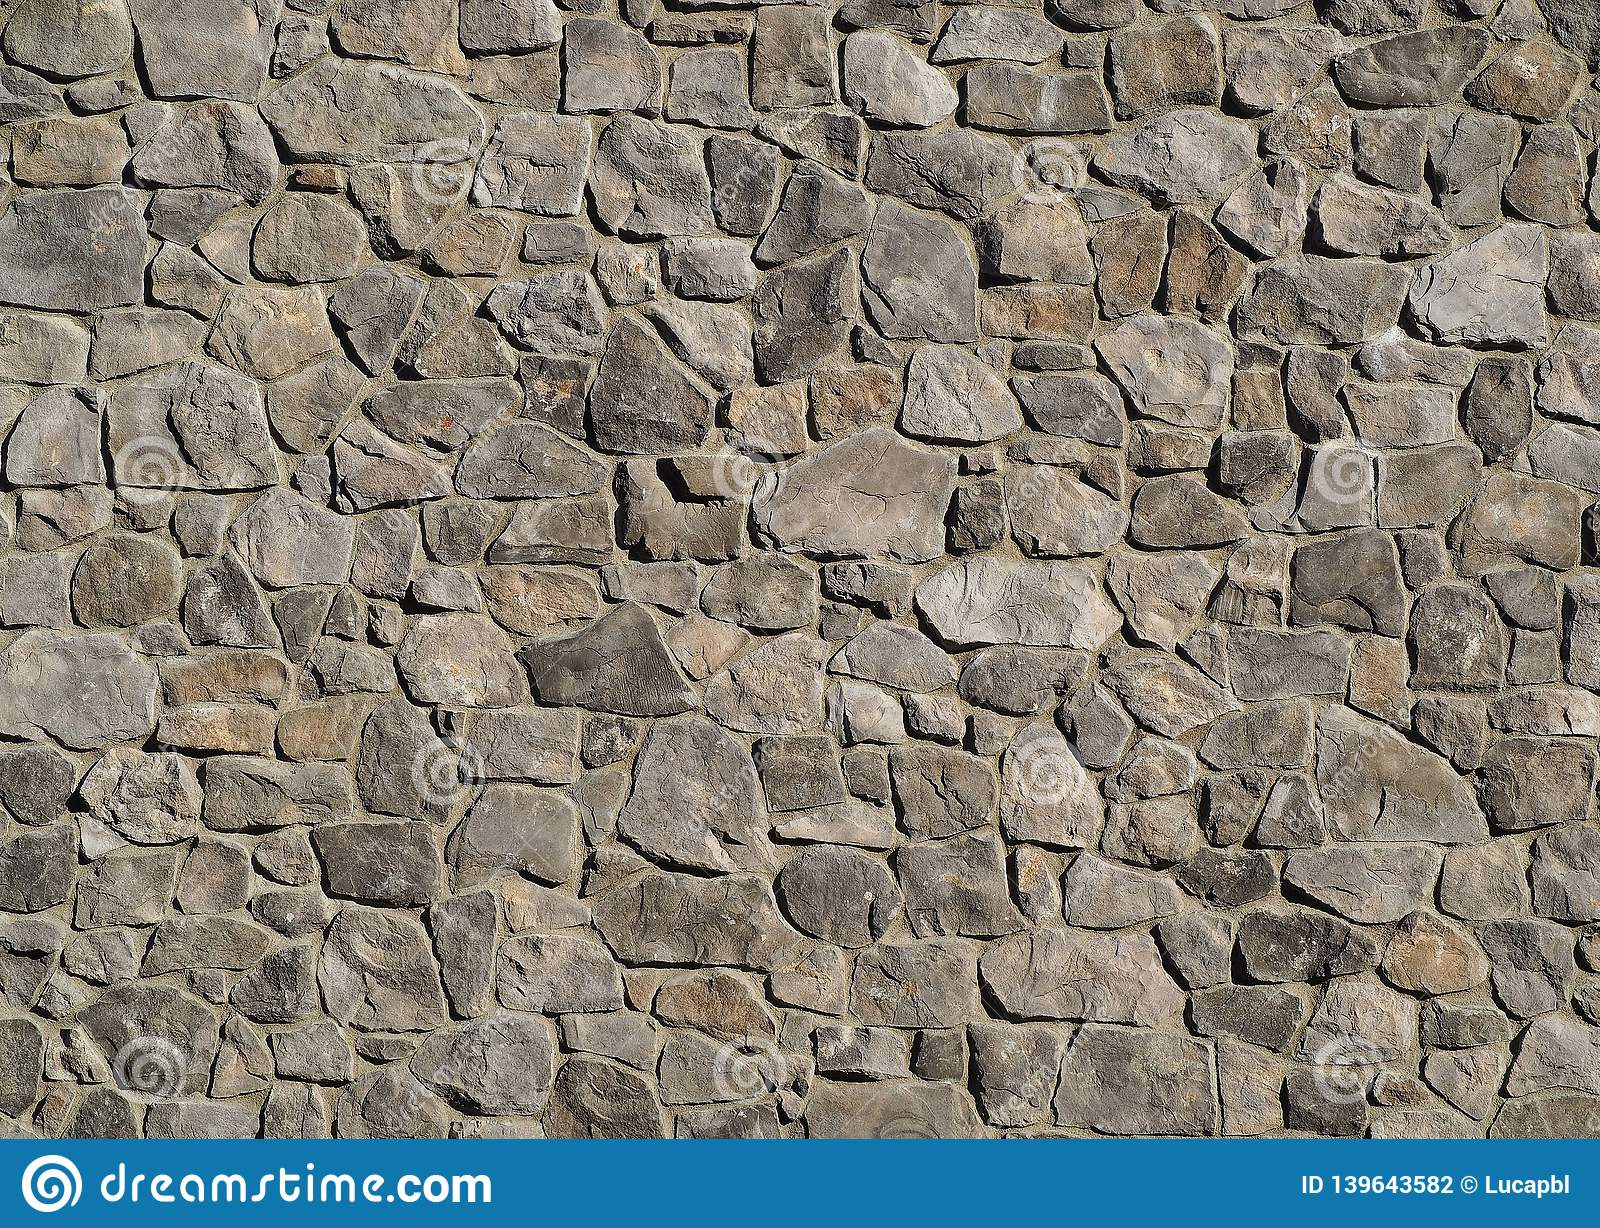 Massive Exterior Wall Cladding Made Of Gray Natural Stones